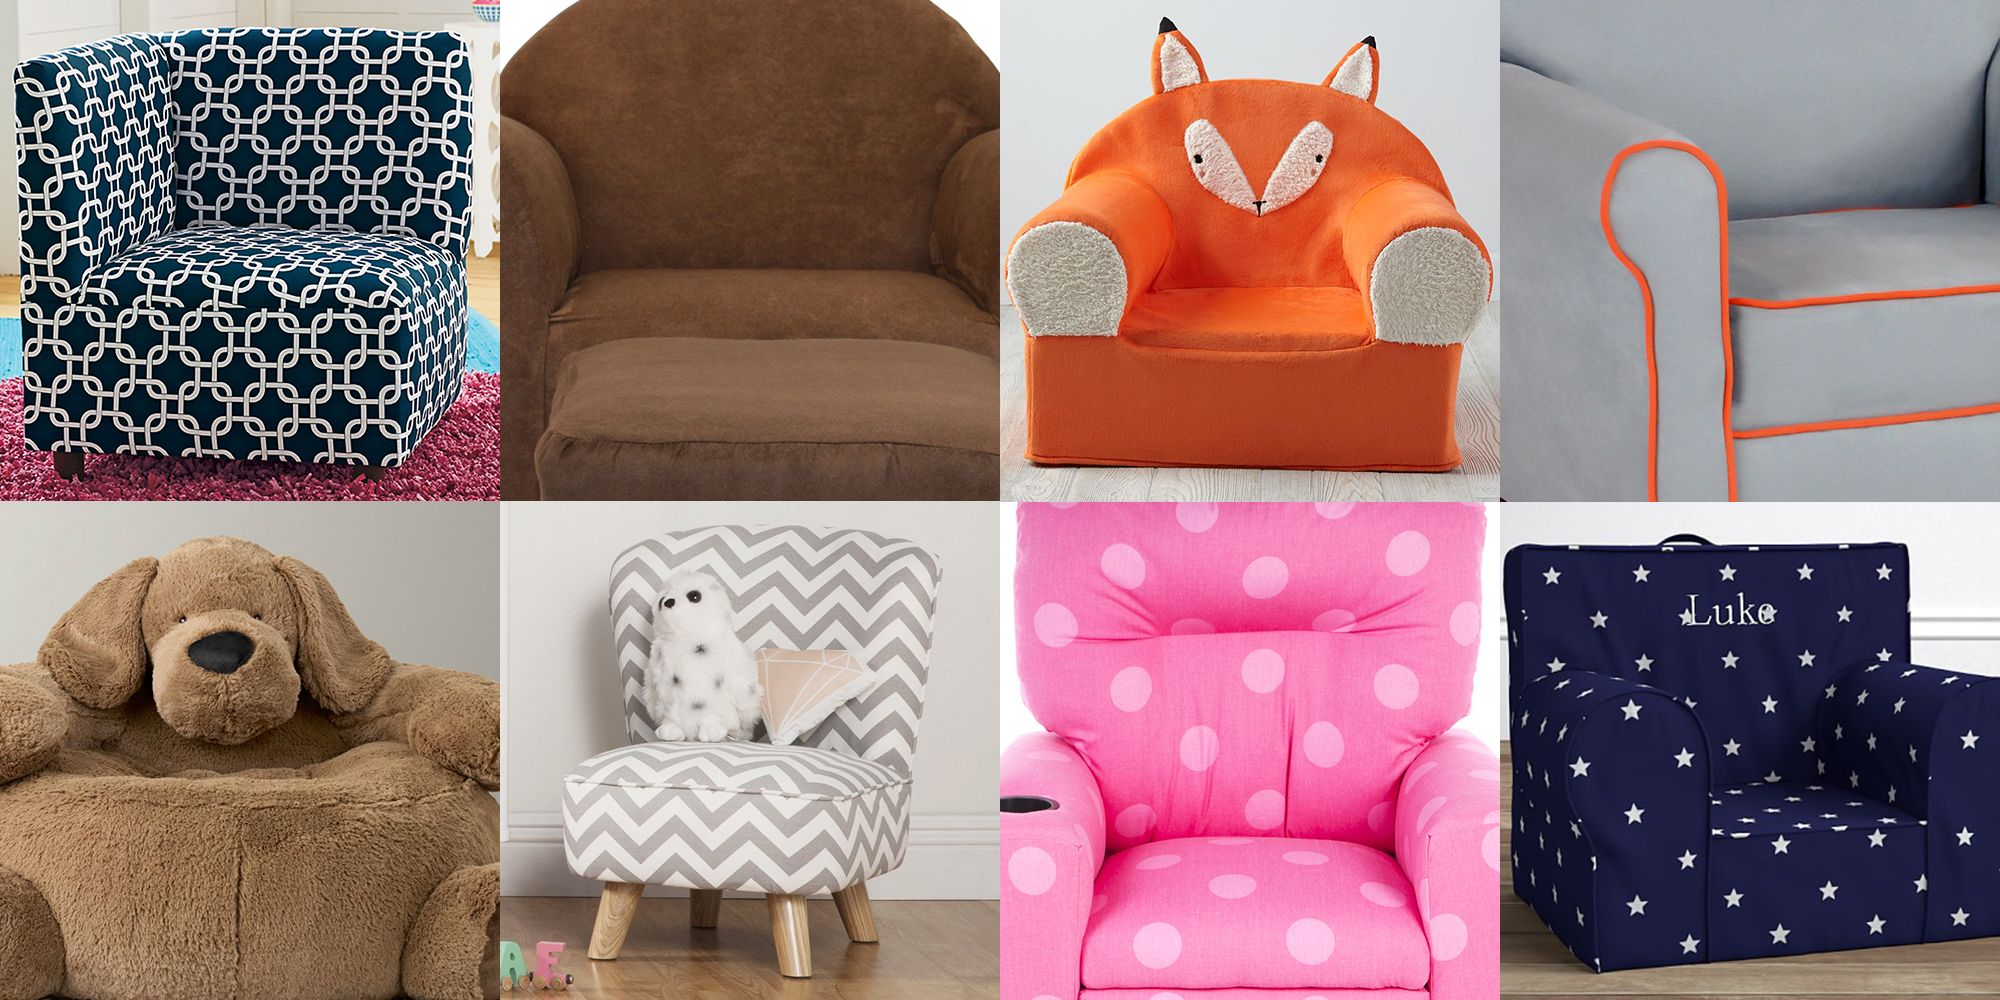 Upholstered Children's Chairs 11 Best Kids Upholstered Chairs In 2018 Upholstered Chairs